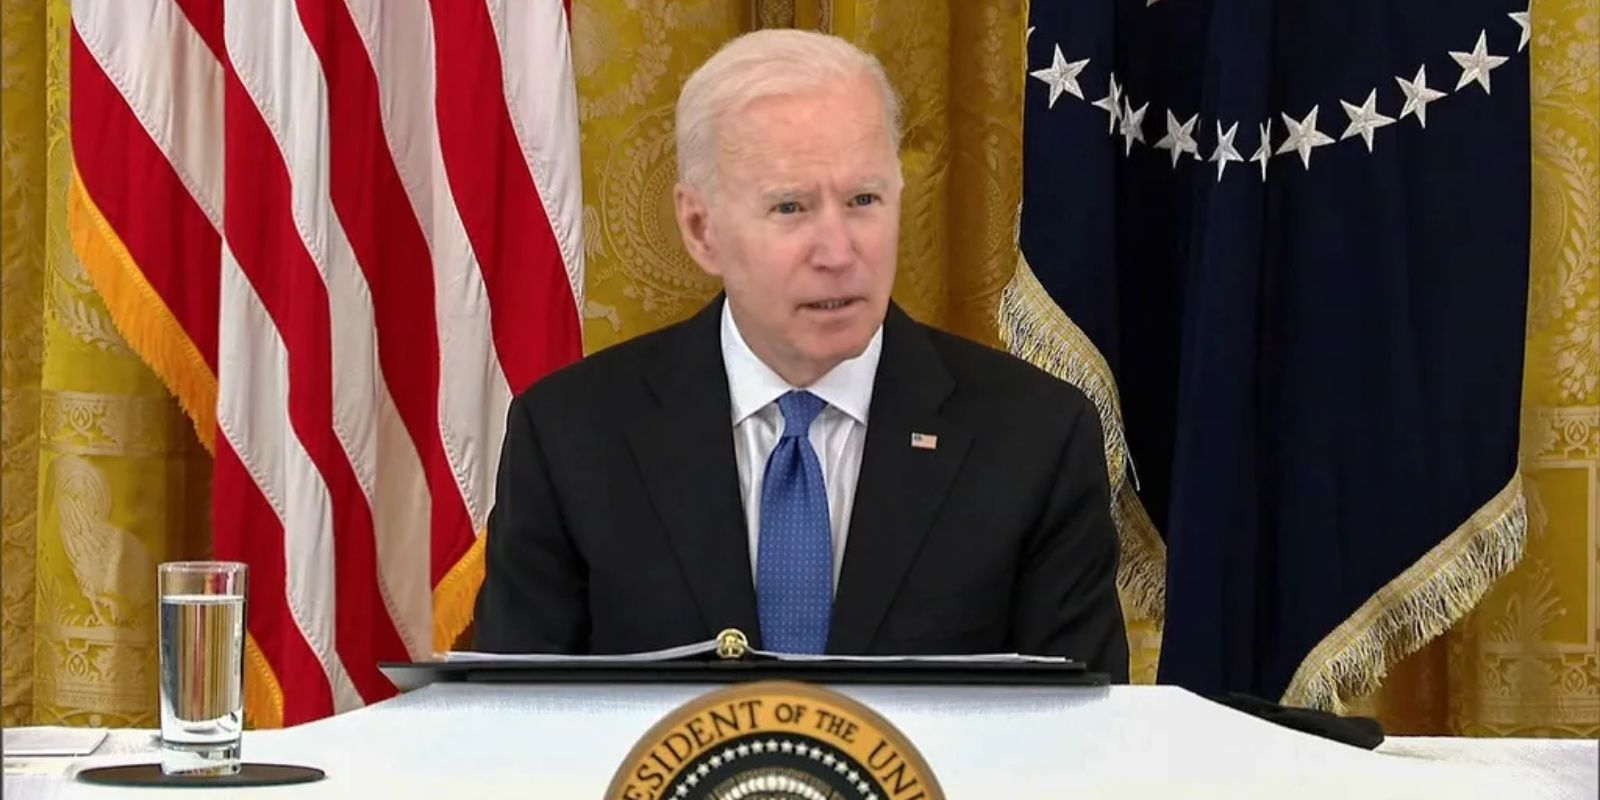 Biden administration doubles refugee cap to 125,000